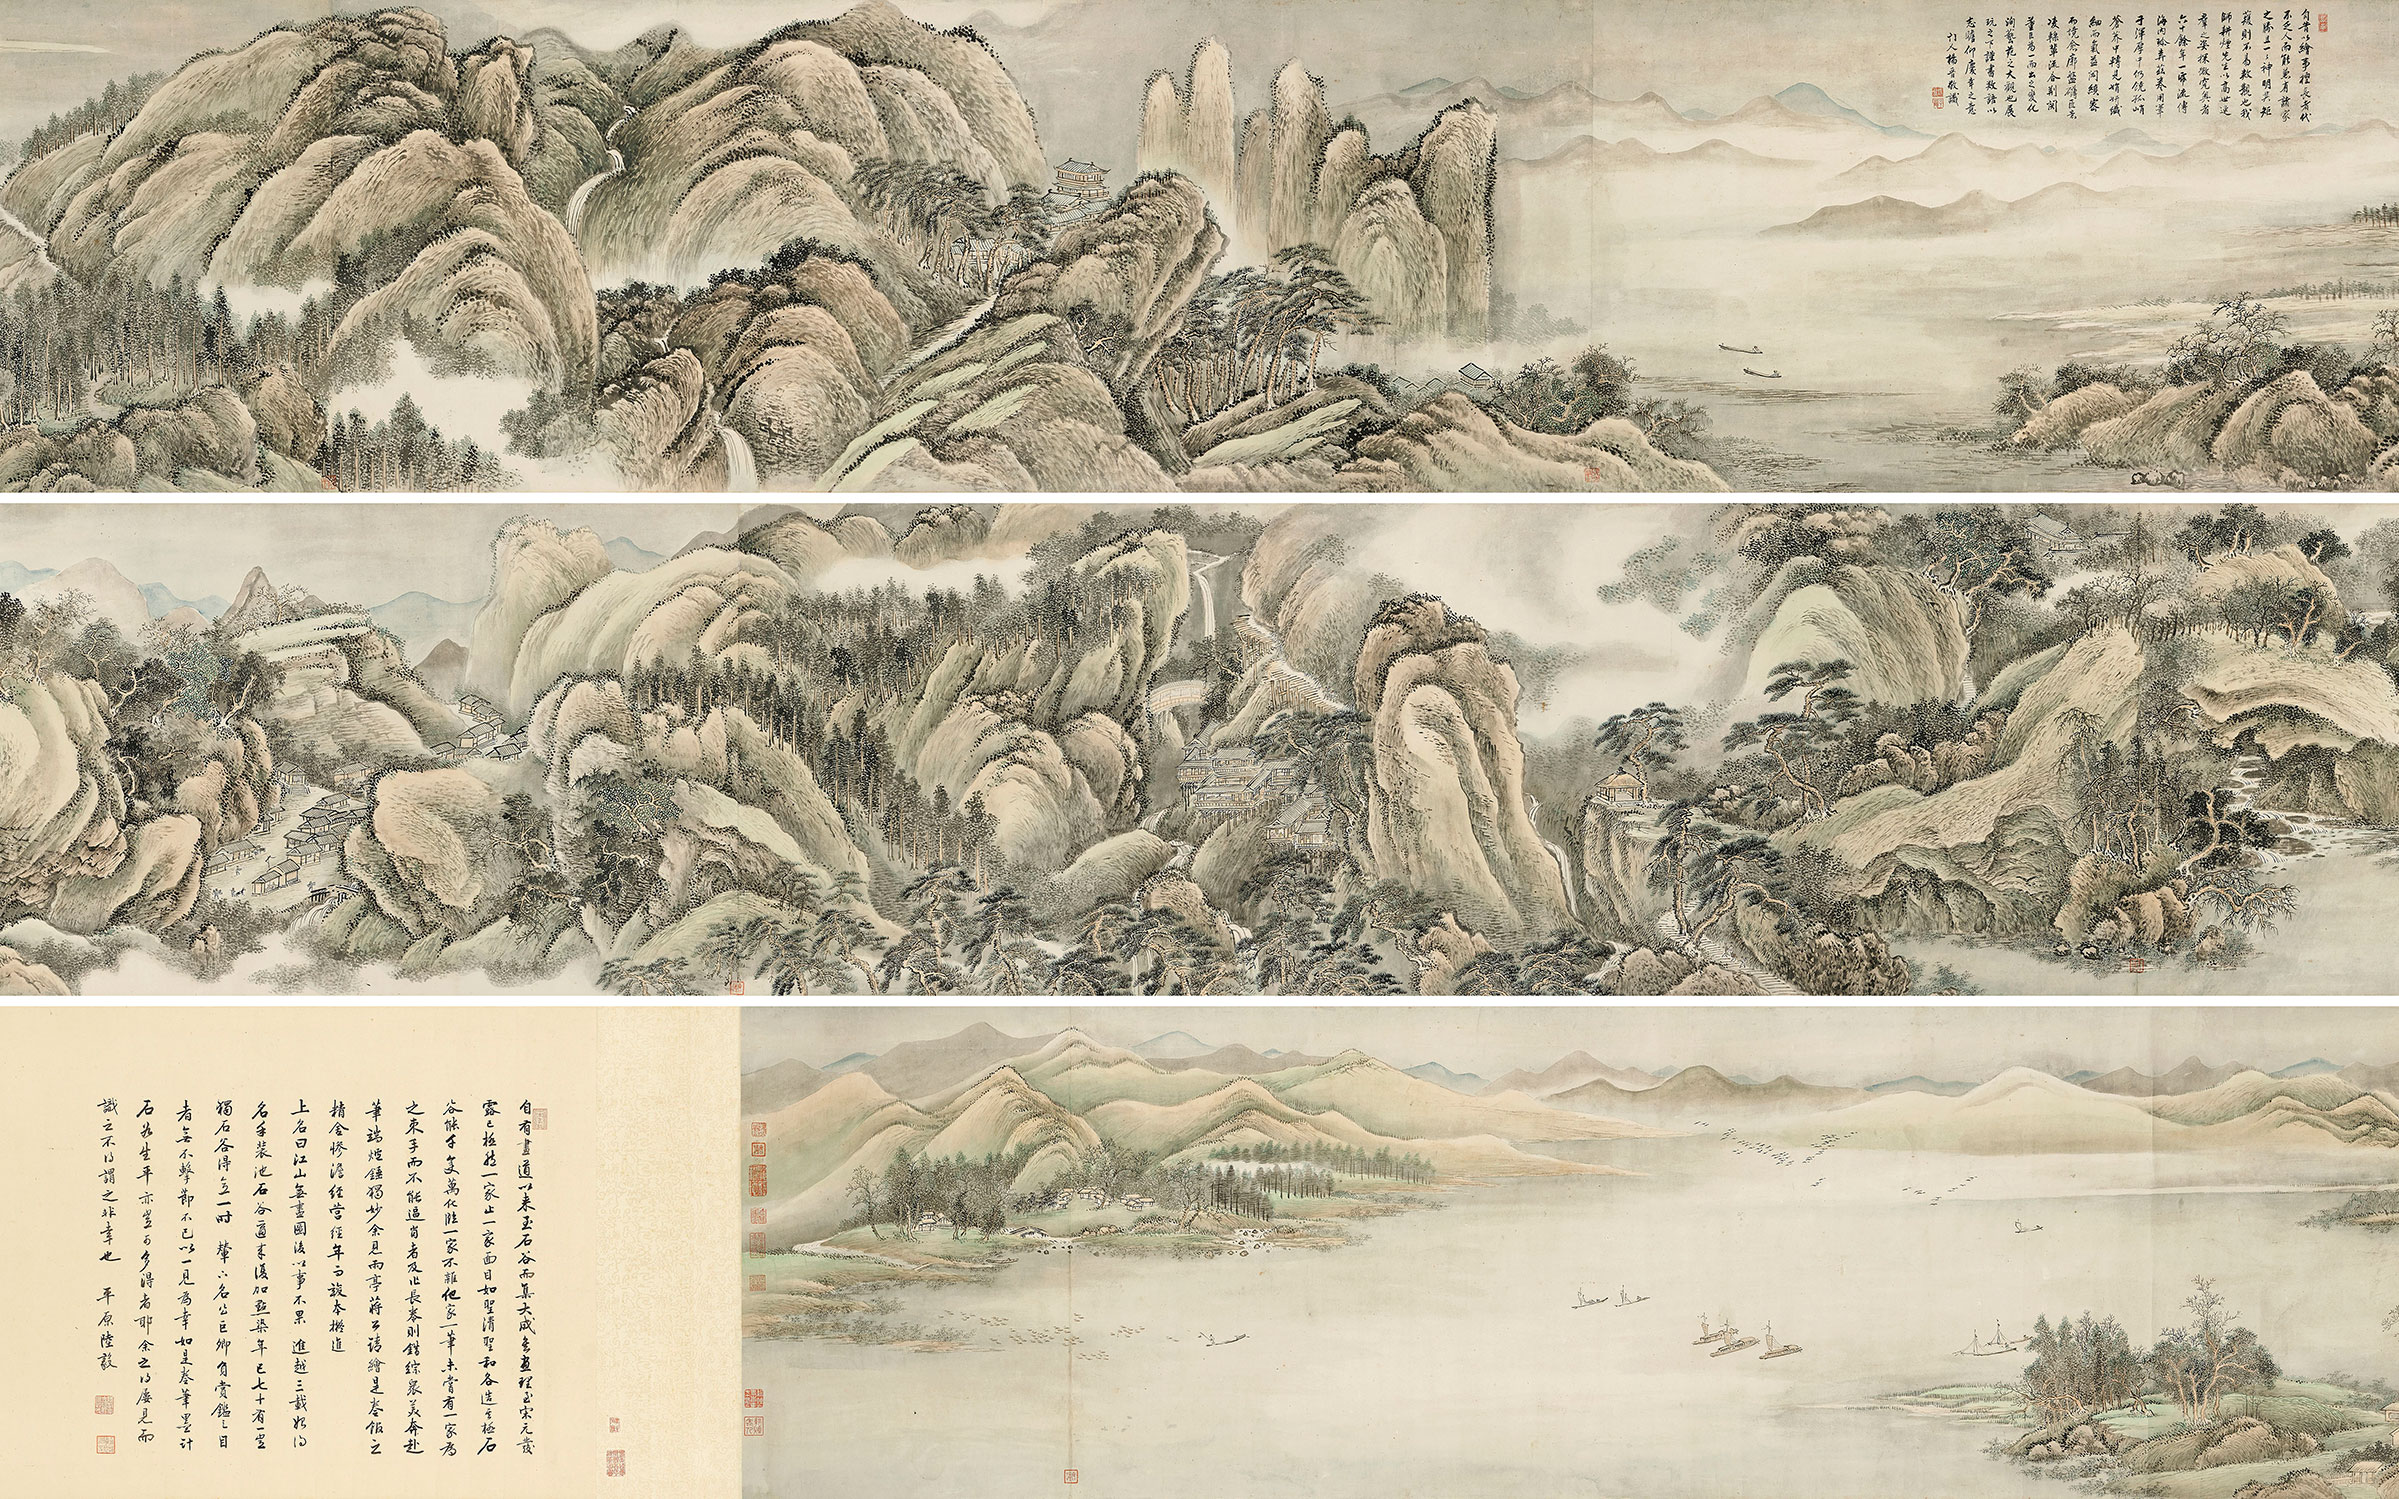 Wang Hui, (1632-1717), (detail) Endless Streams and Mountains. Handscroll, ink and colour on paper. 21 x 480½ in (53.2 x 1220.5 cm). Estimate HK$3,000,000-5,000,000 (US$380,000-640,000).